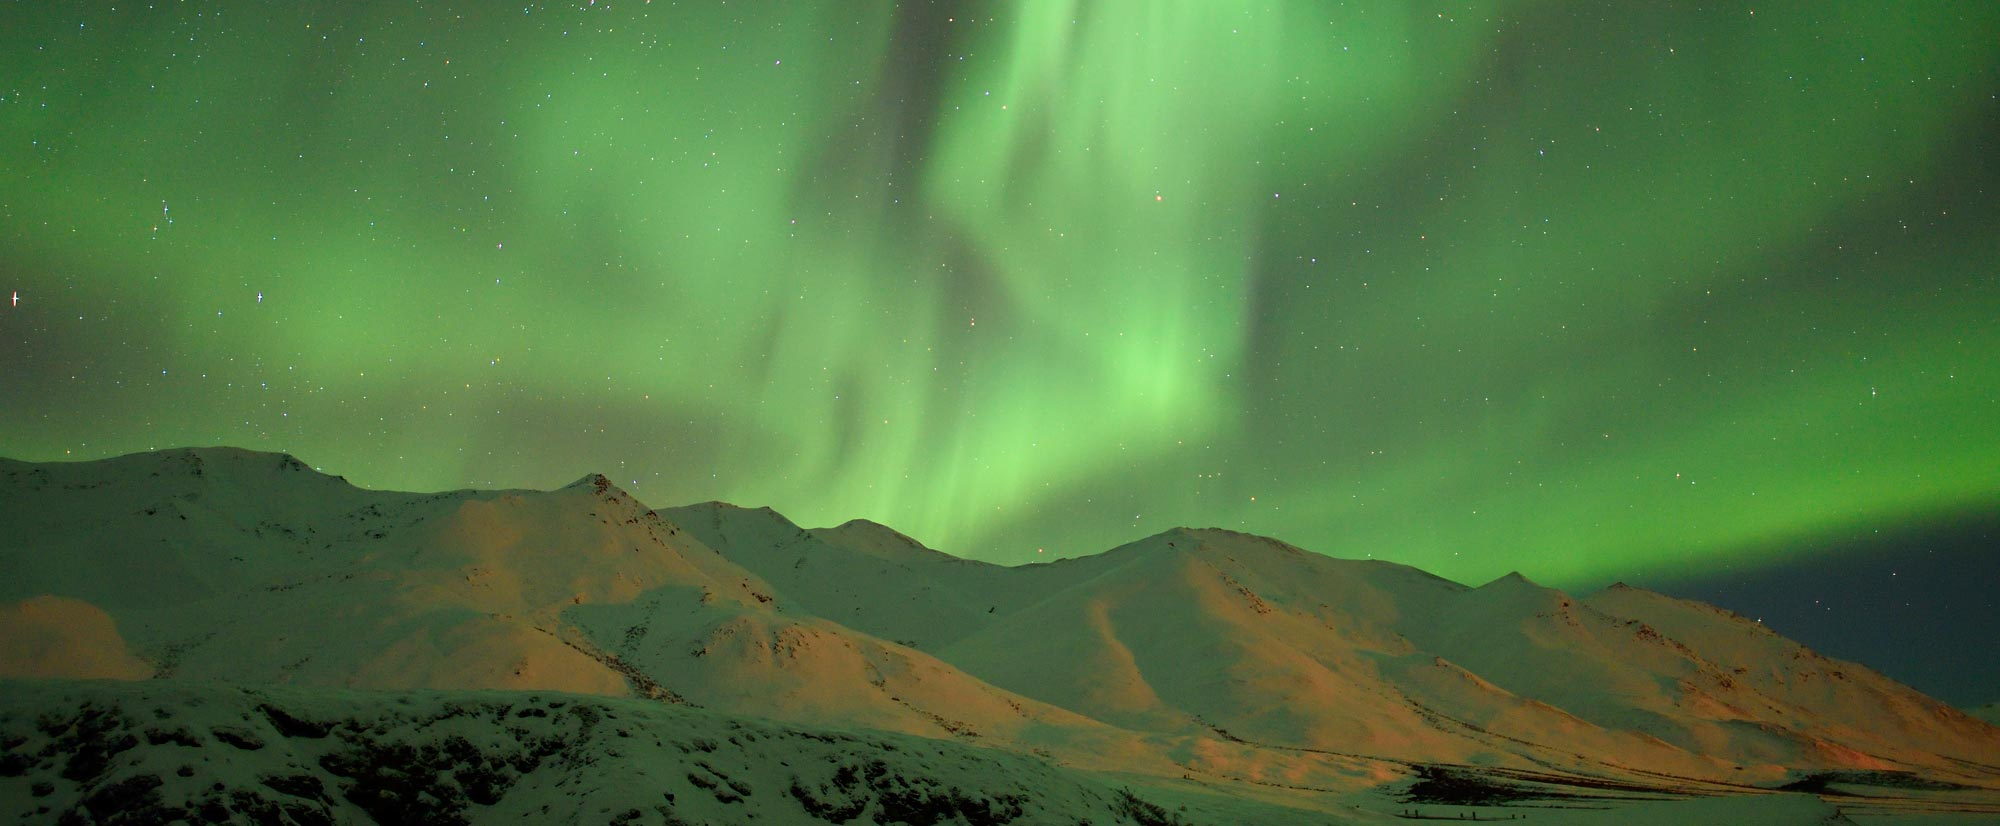 Northern lights photo Brooks Range Alaska.